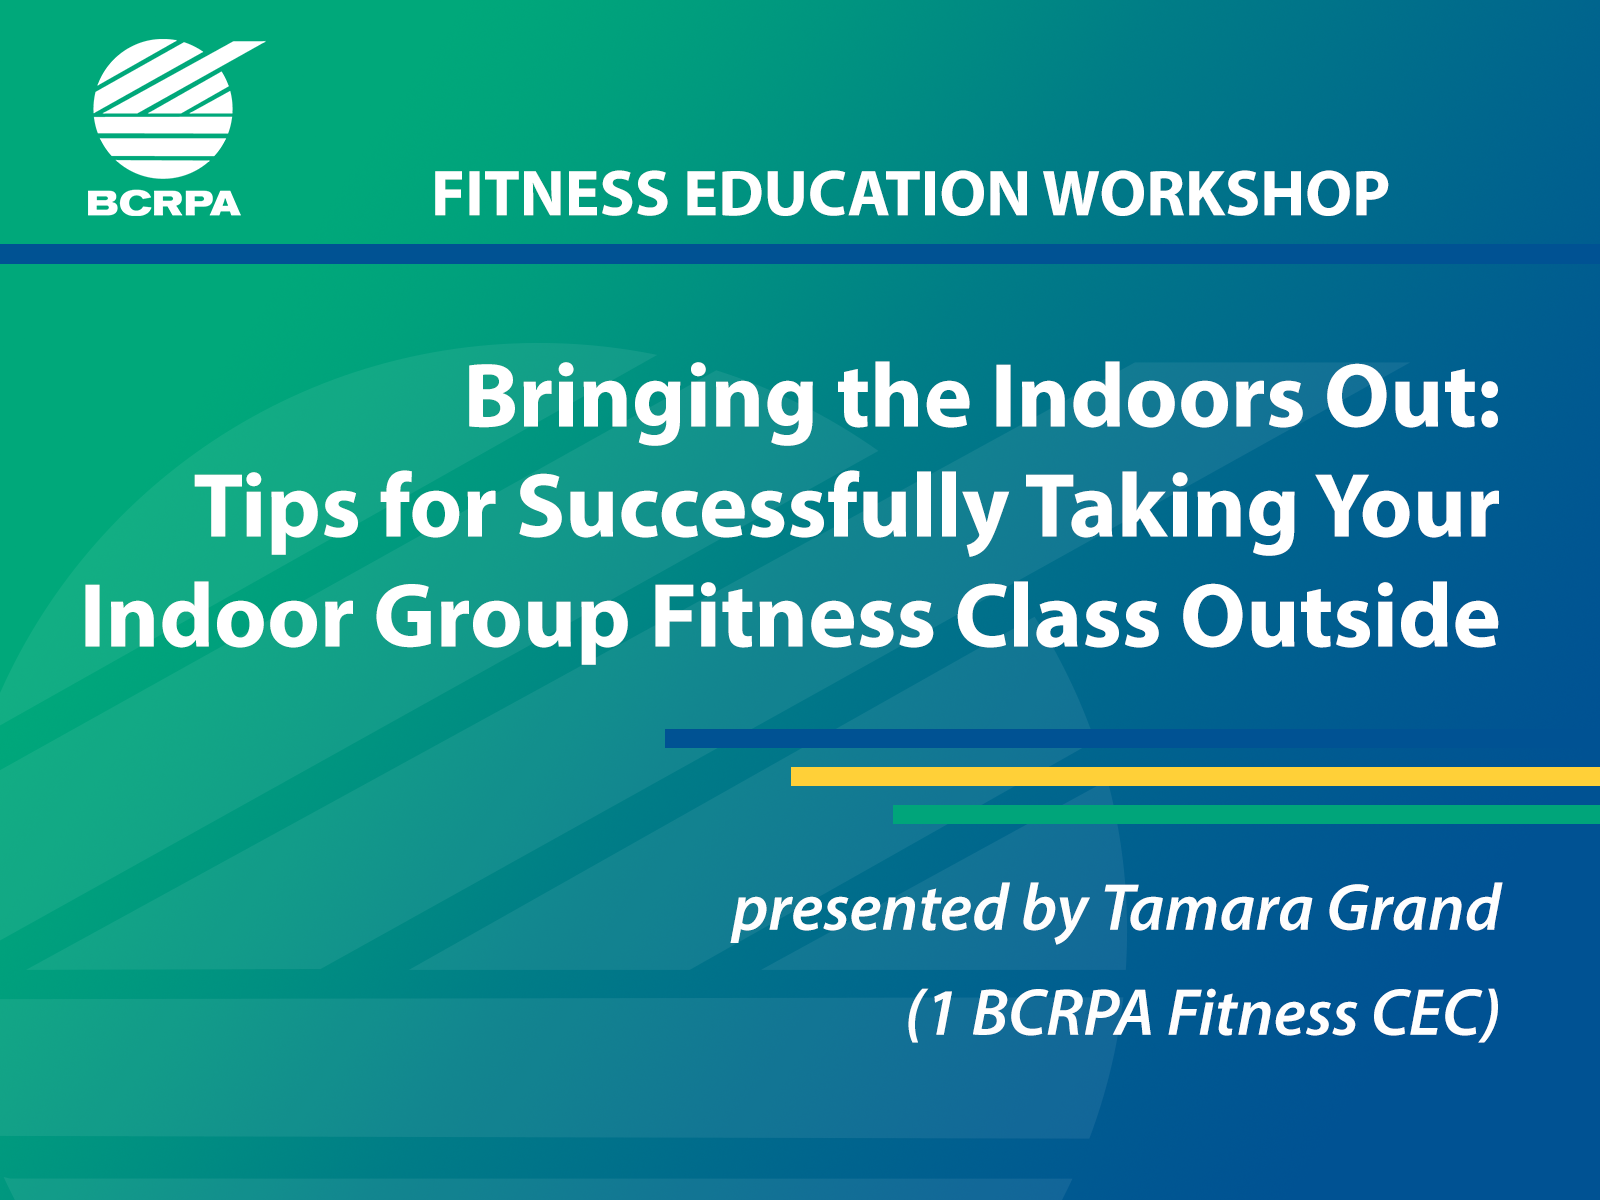 Bringing the Indoors Out: Tips for Successfully Taking your Indoor Group Fitness Class Outside